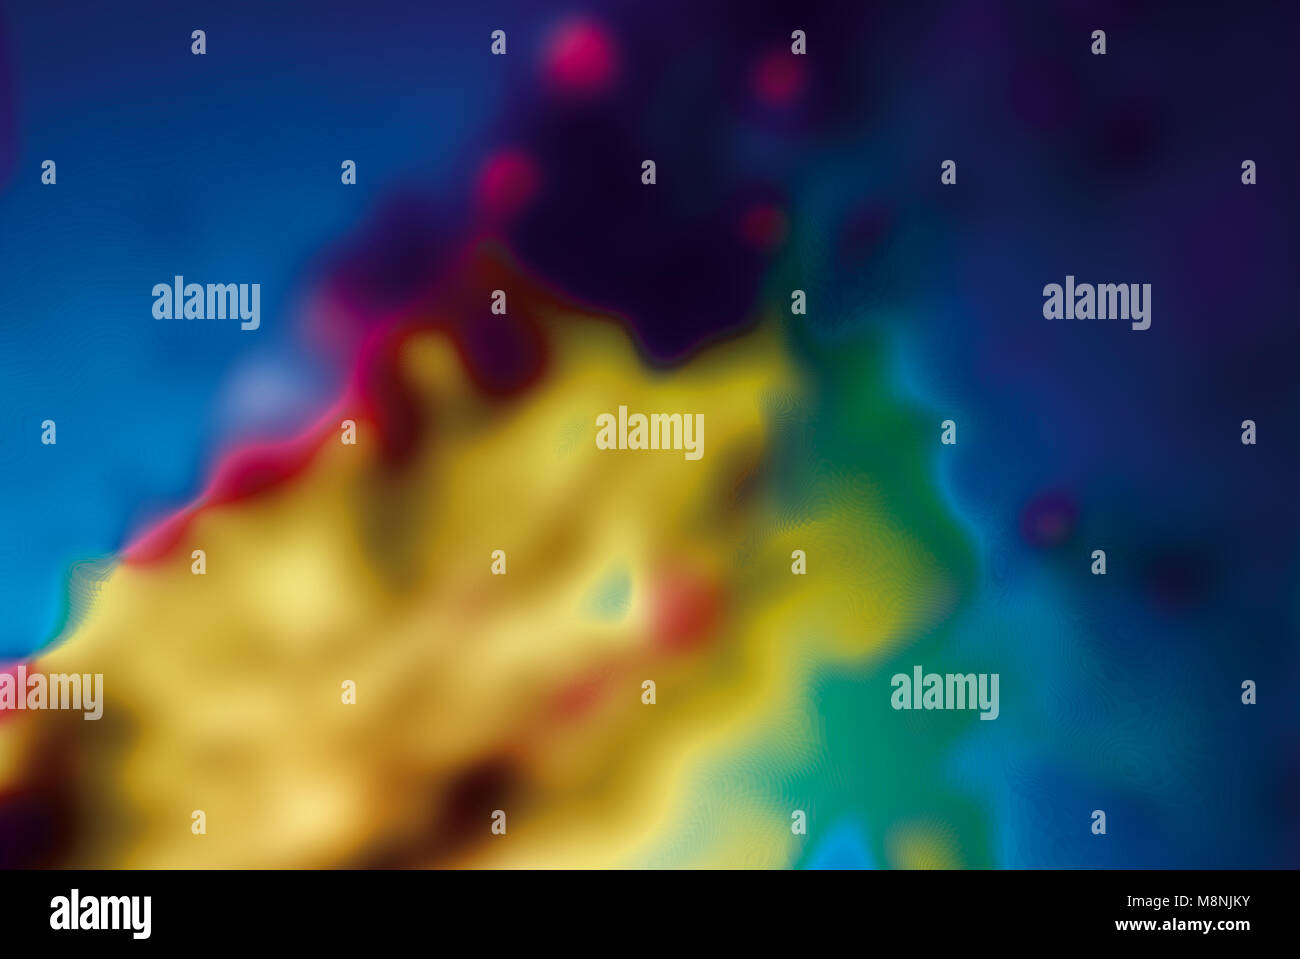 Abstract blurred cloudy background colorful glowing gradient light spectrum space dynamic creative backdrop illustration - Stock Image